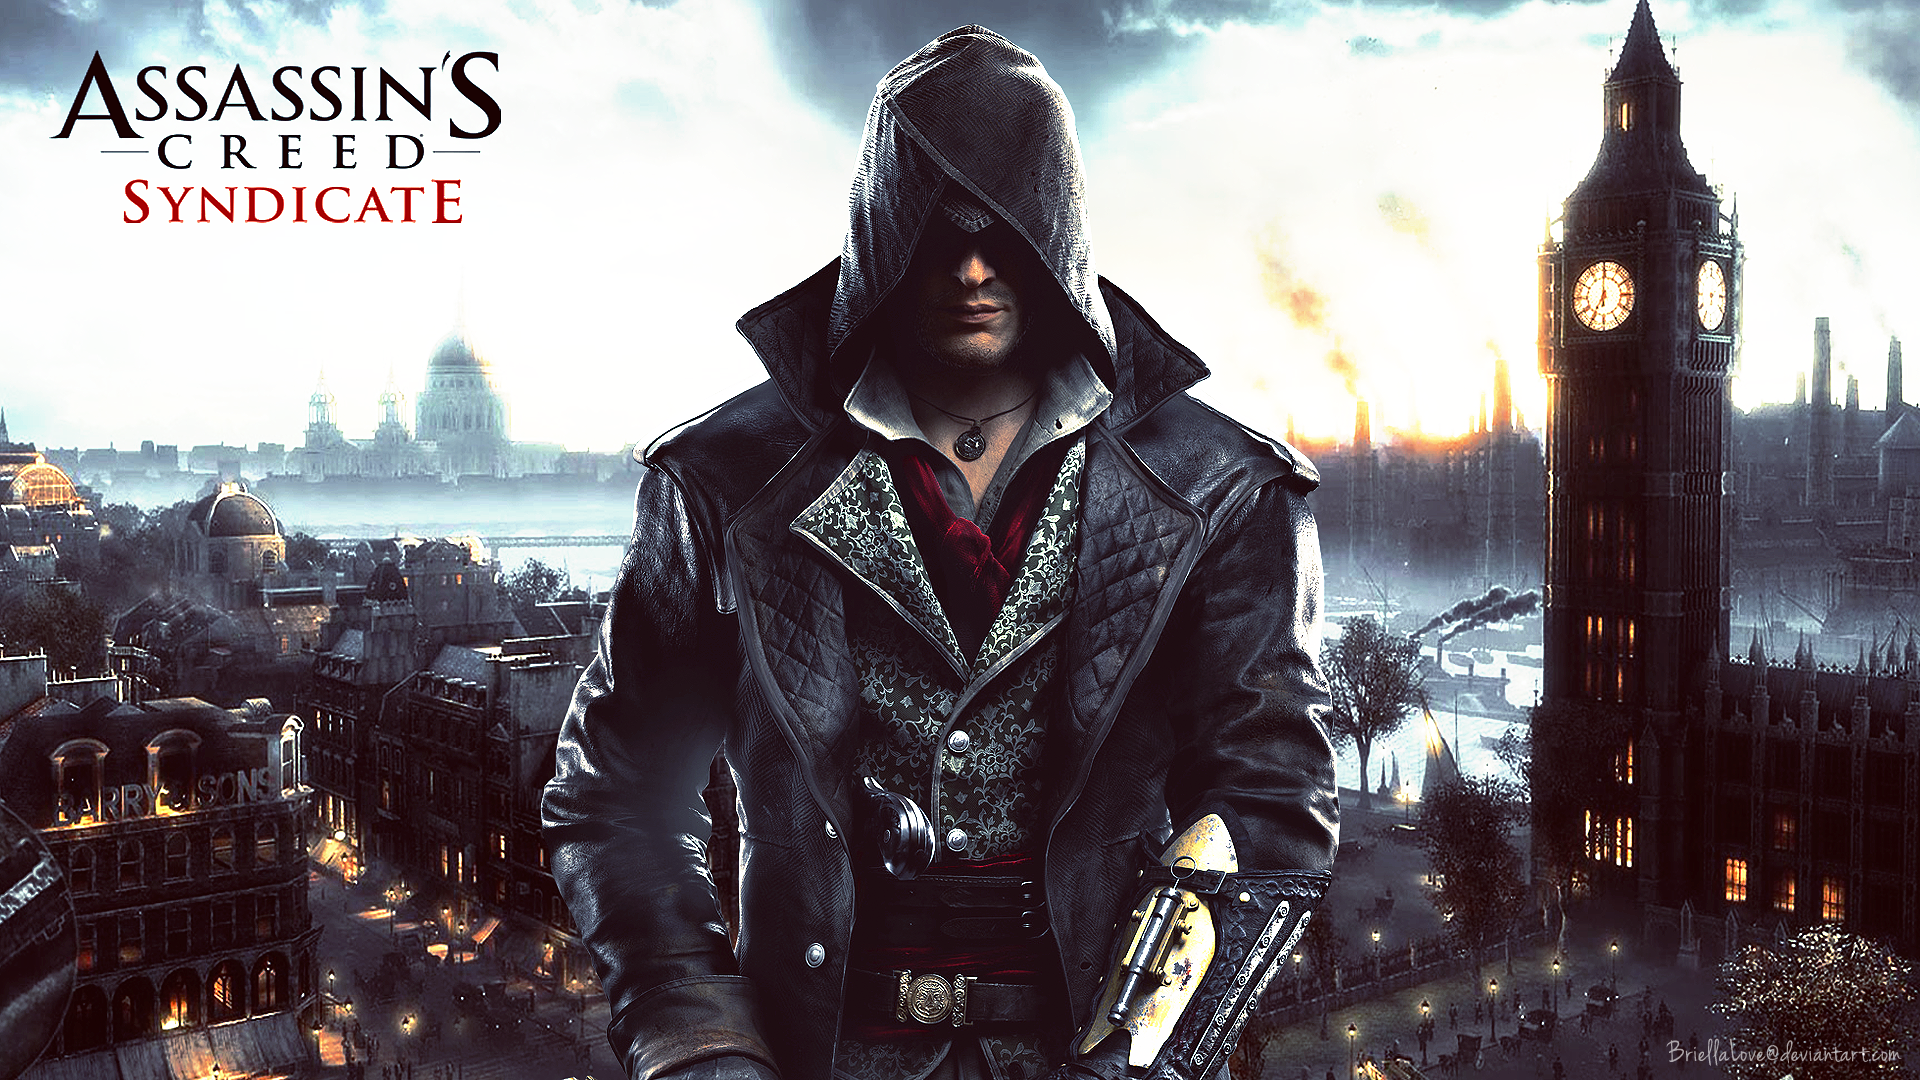 Assassin S Creed Syndicate Hd Wallpaper By Briellalove Deviantart